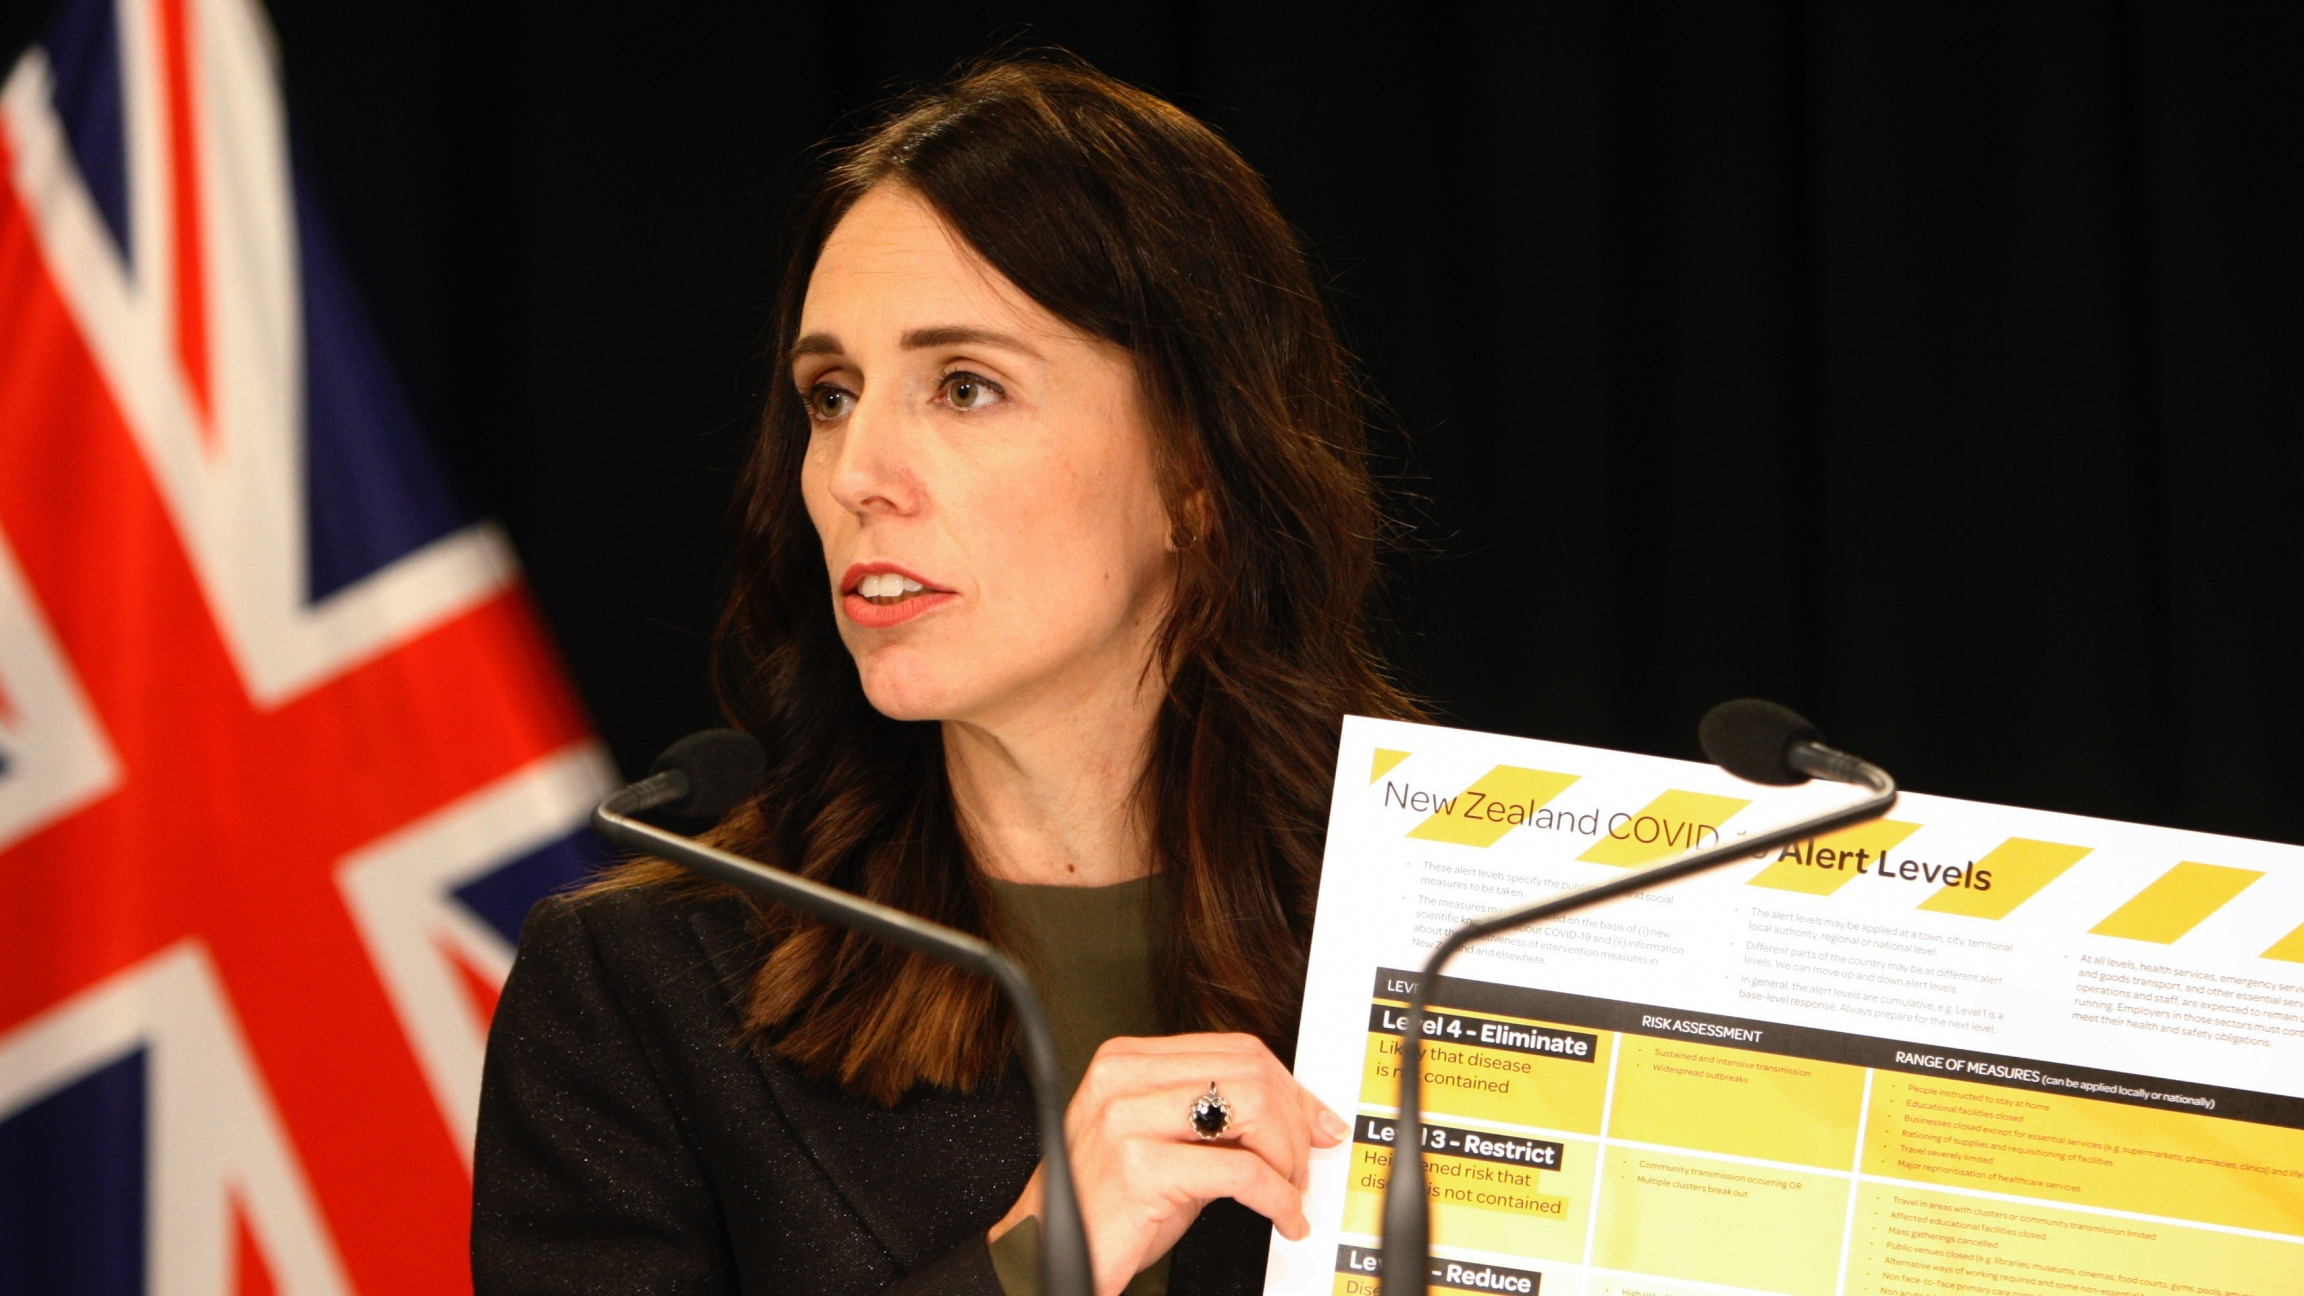 A woman leader holds up a COVID-19 chart card.